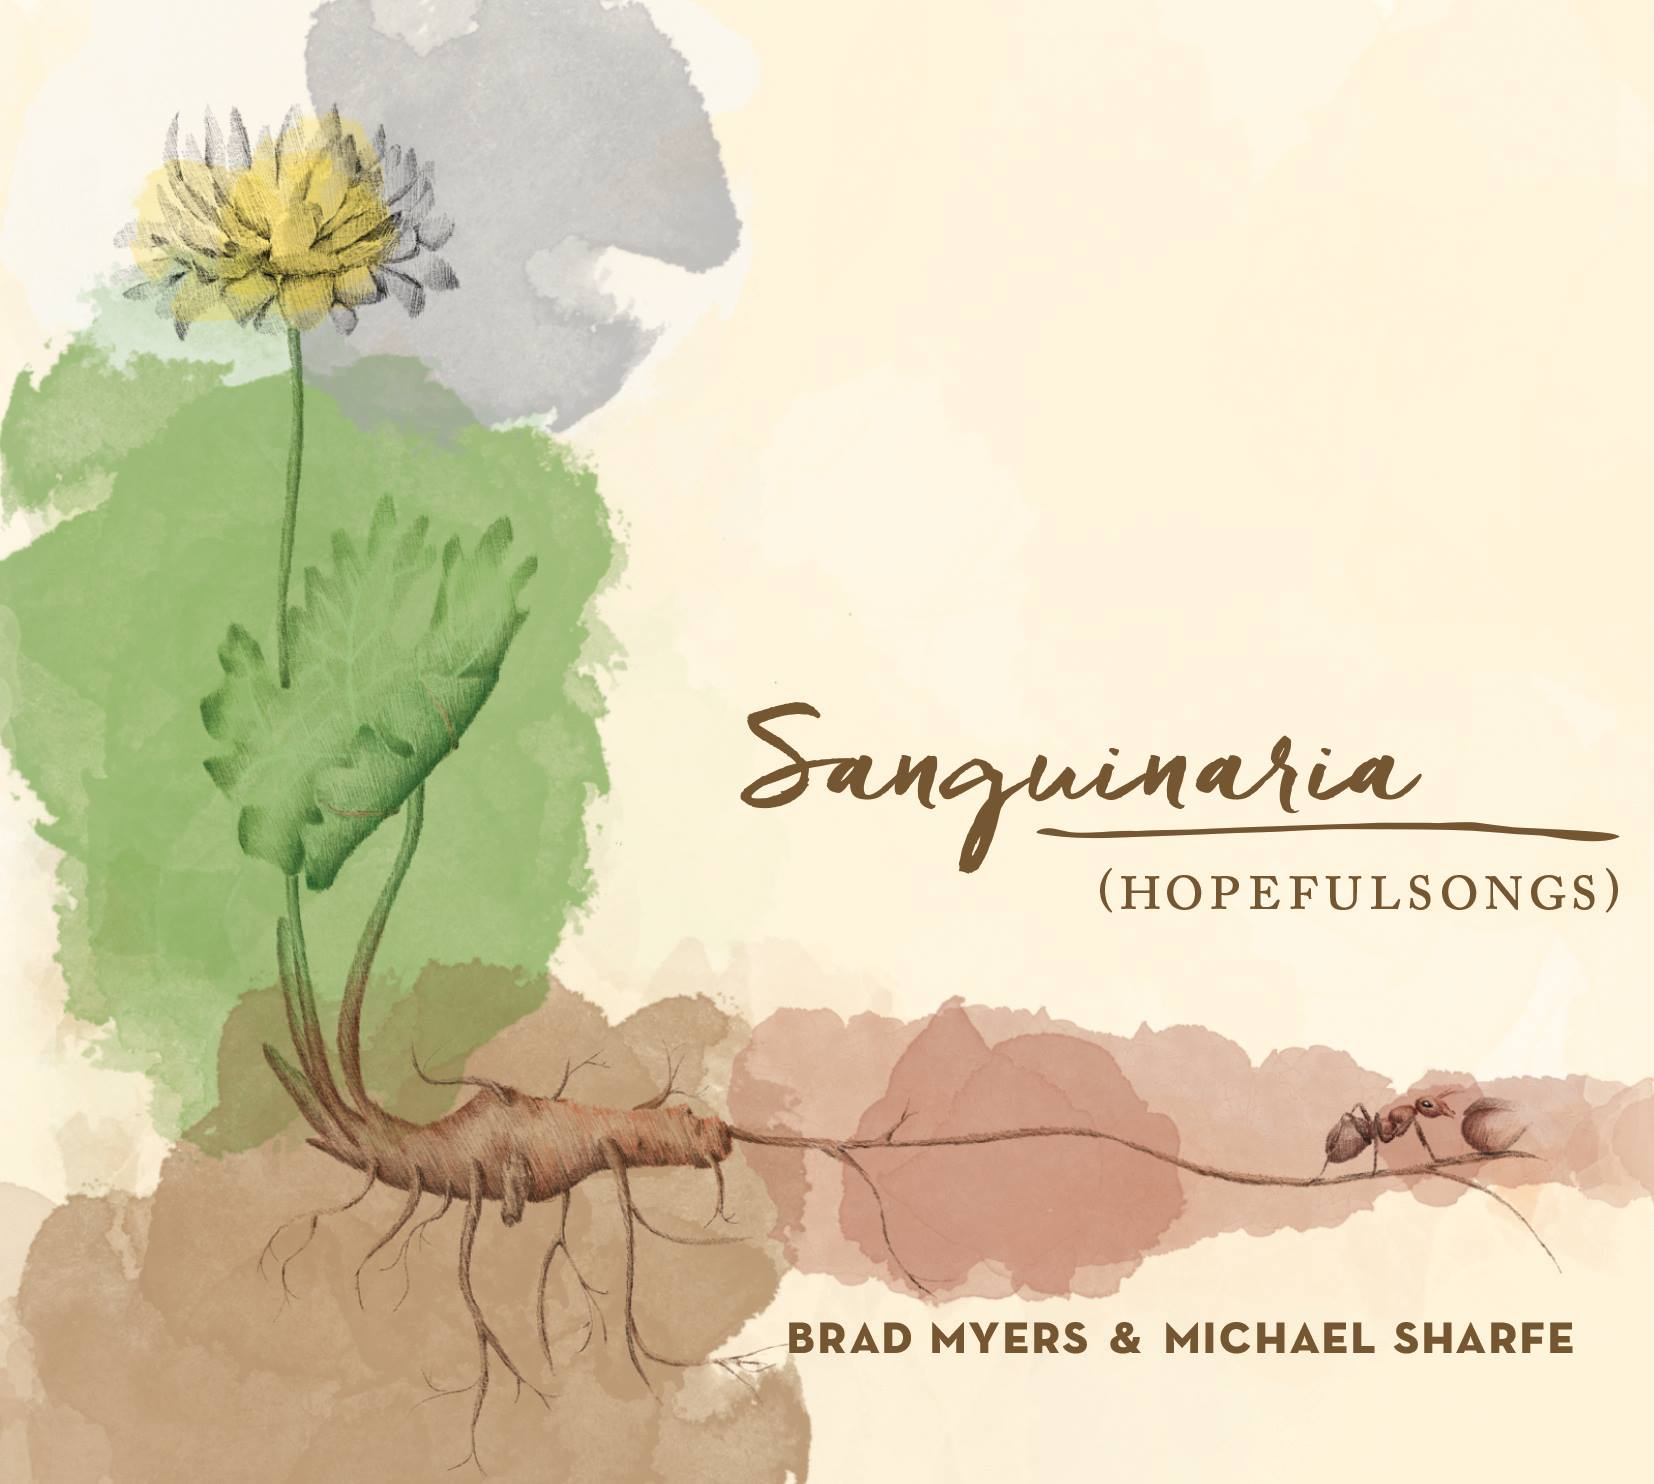 Sanguinaria (Hopefulsongs)